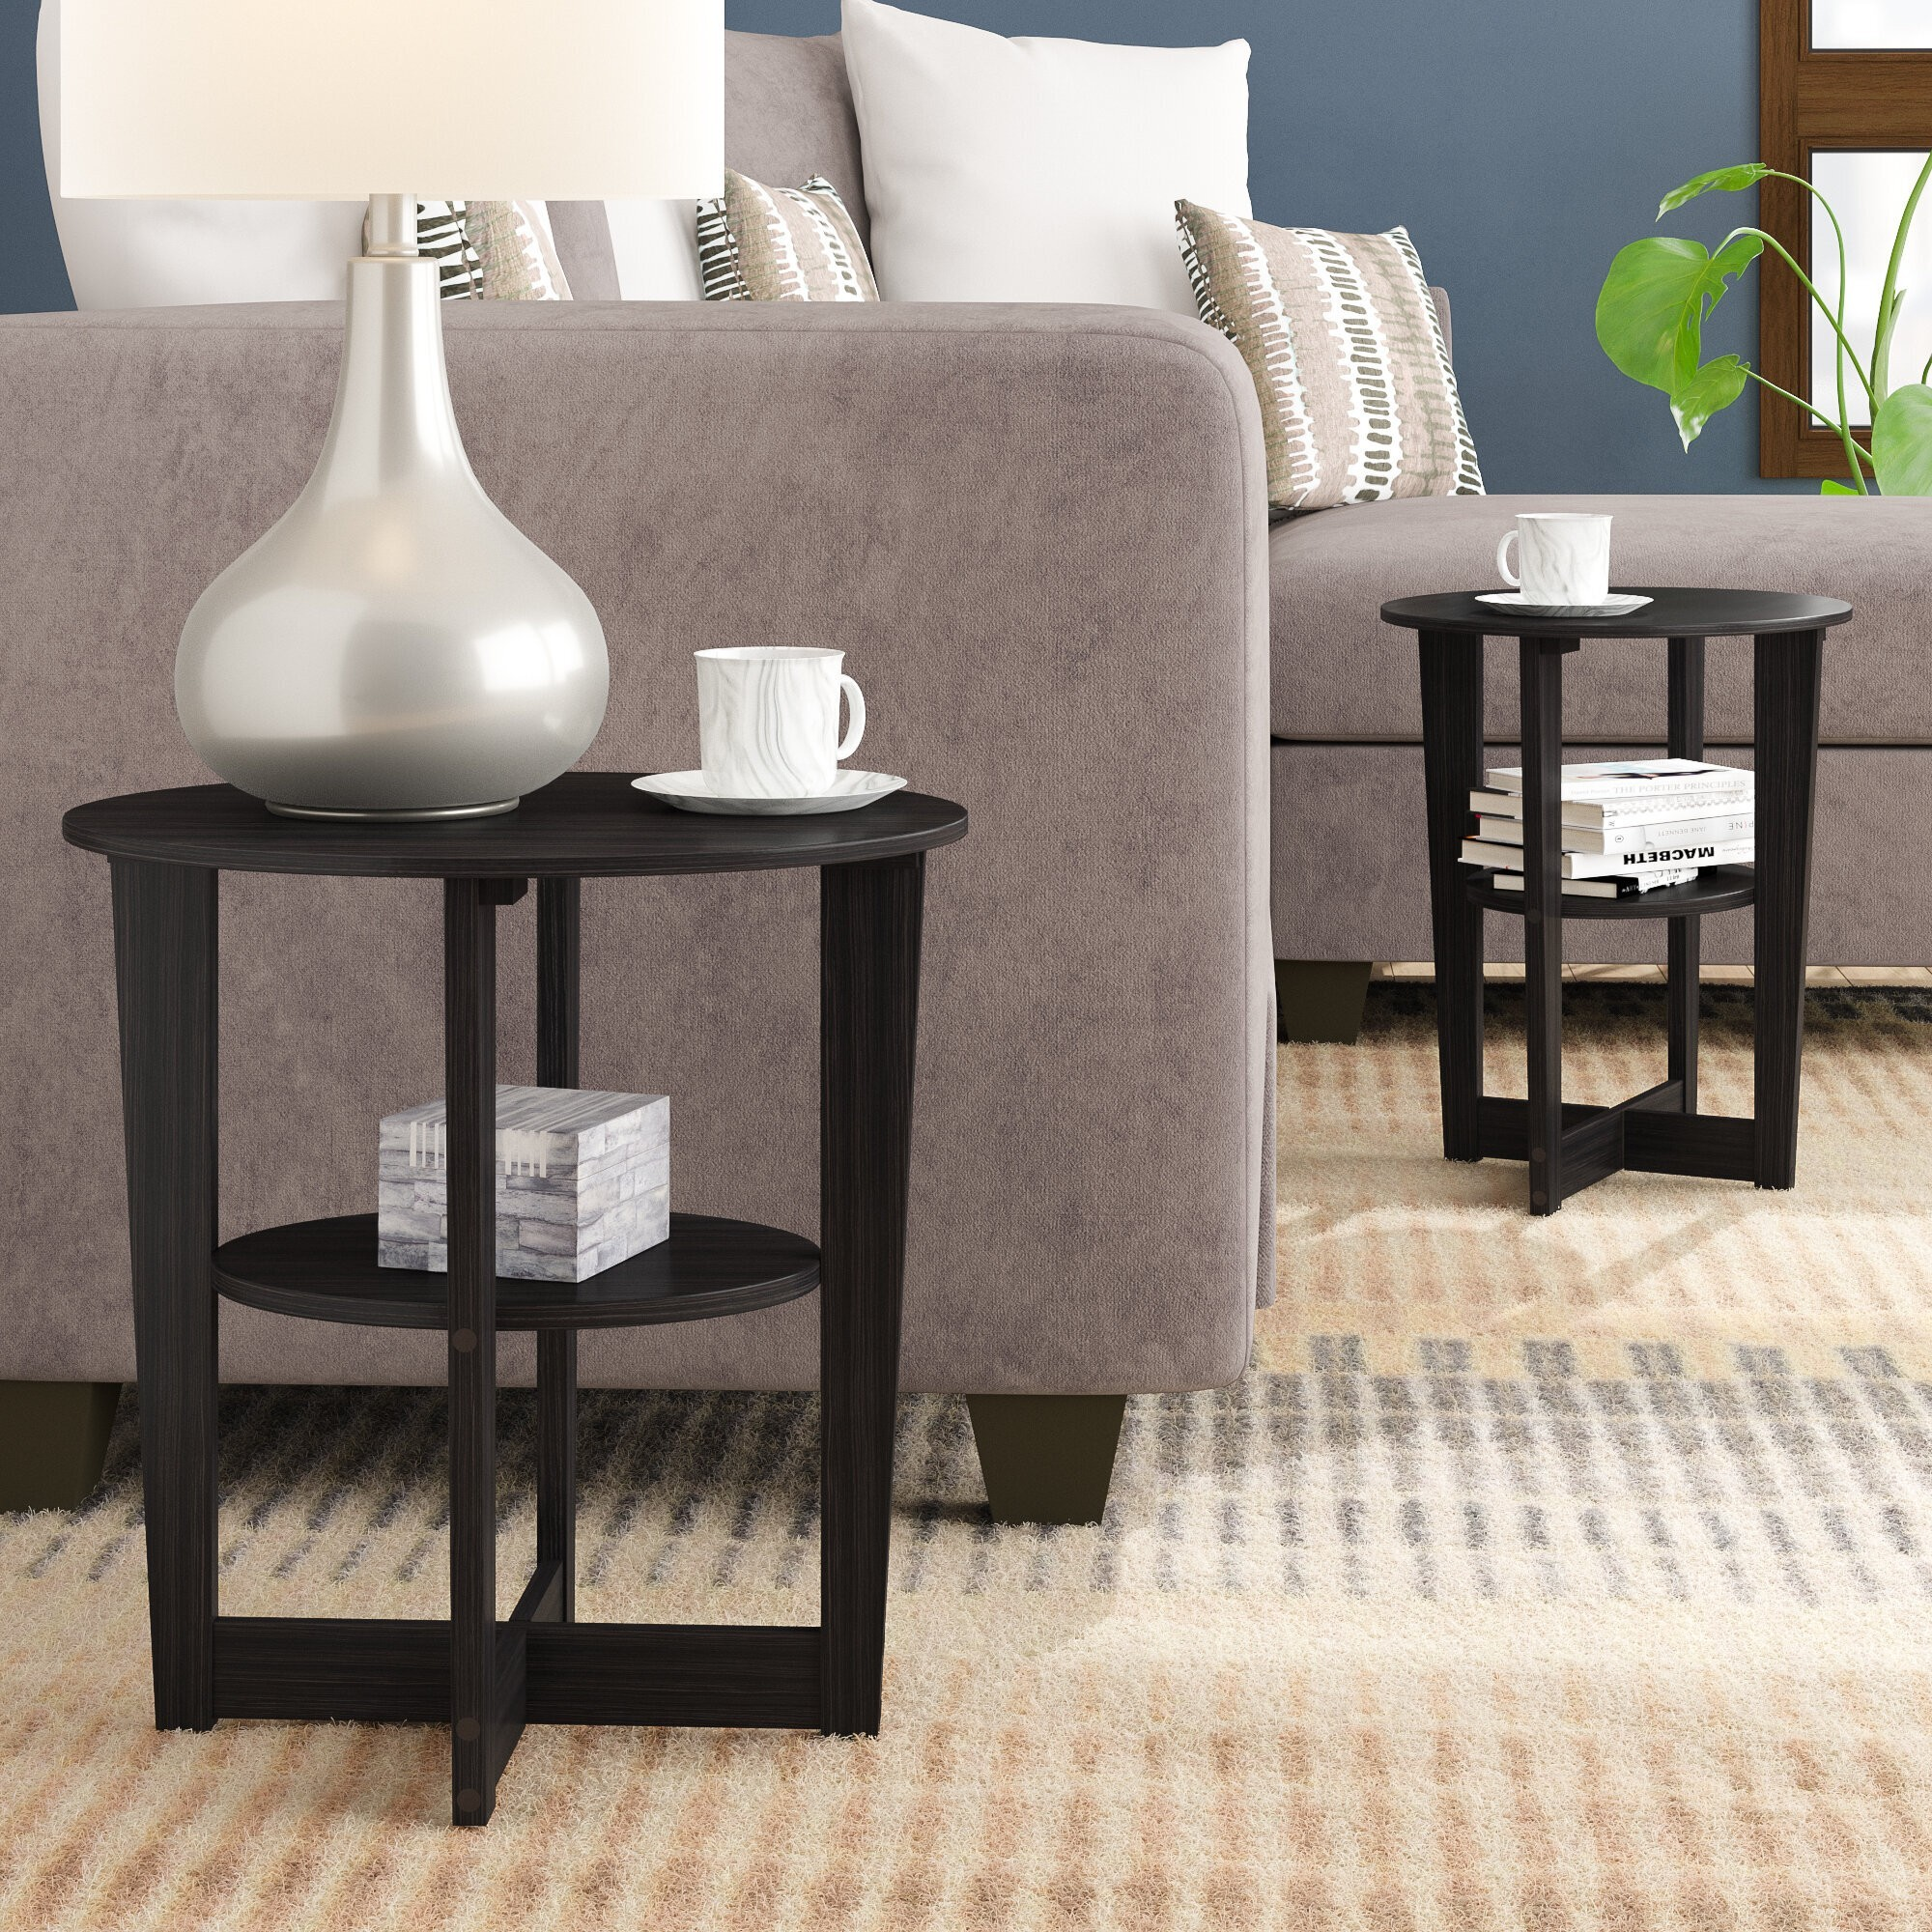 How To Choose An End And Side Table